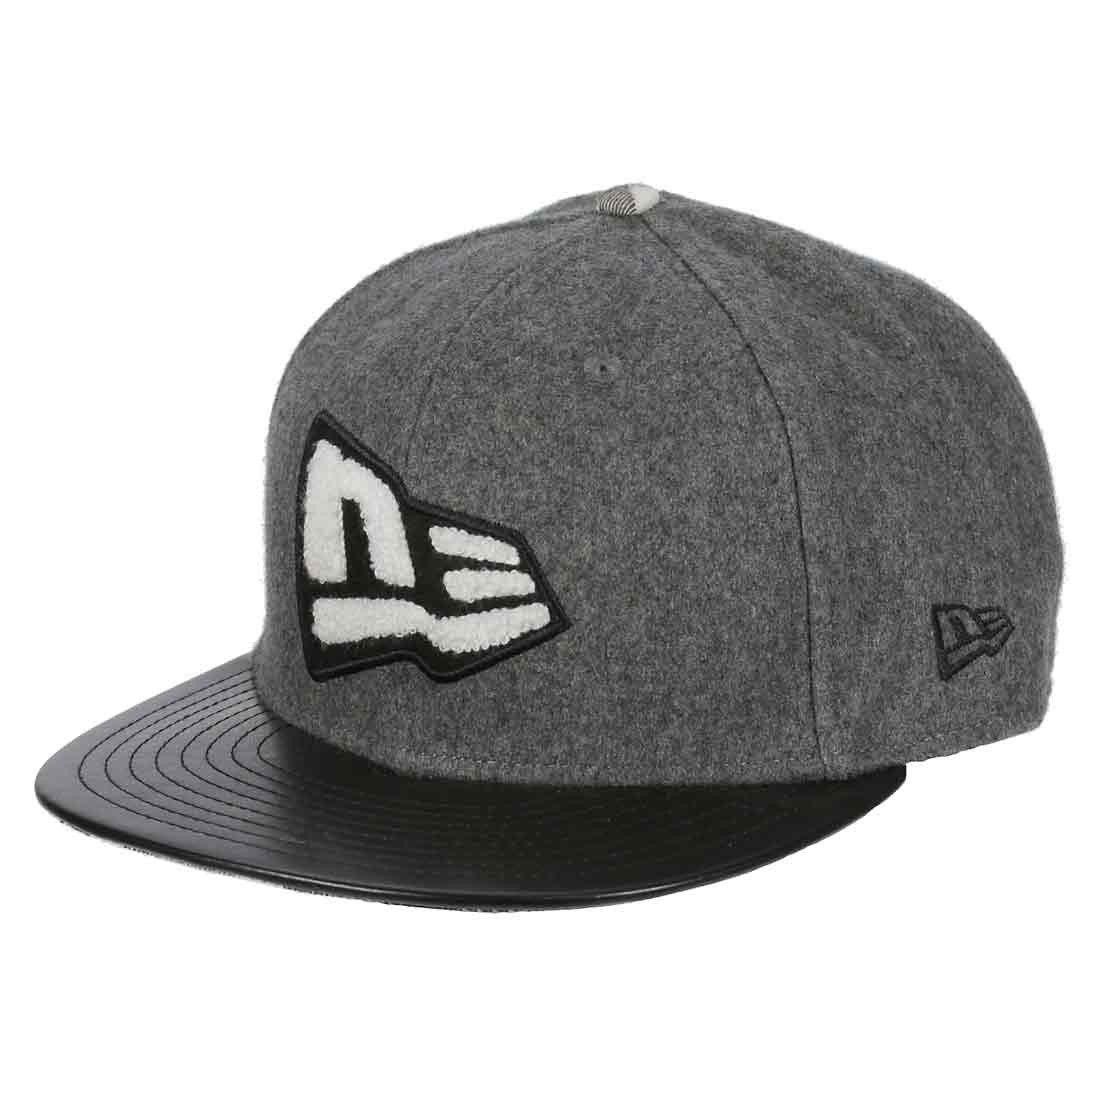 9ade58ffeeade ... coupon for gorra new era flag letterman 9fifty snapback gray 78340 a3883